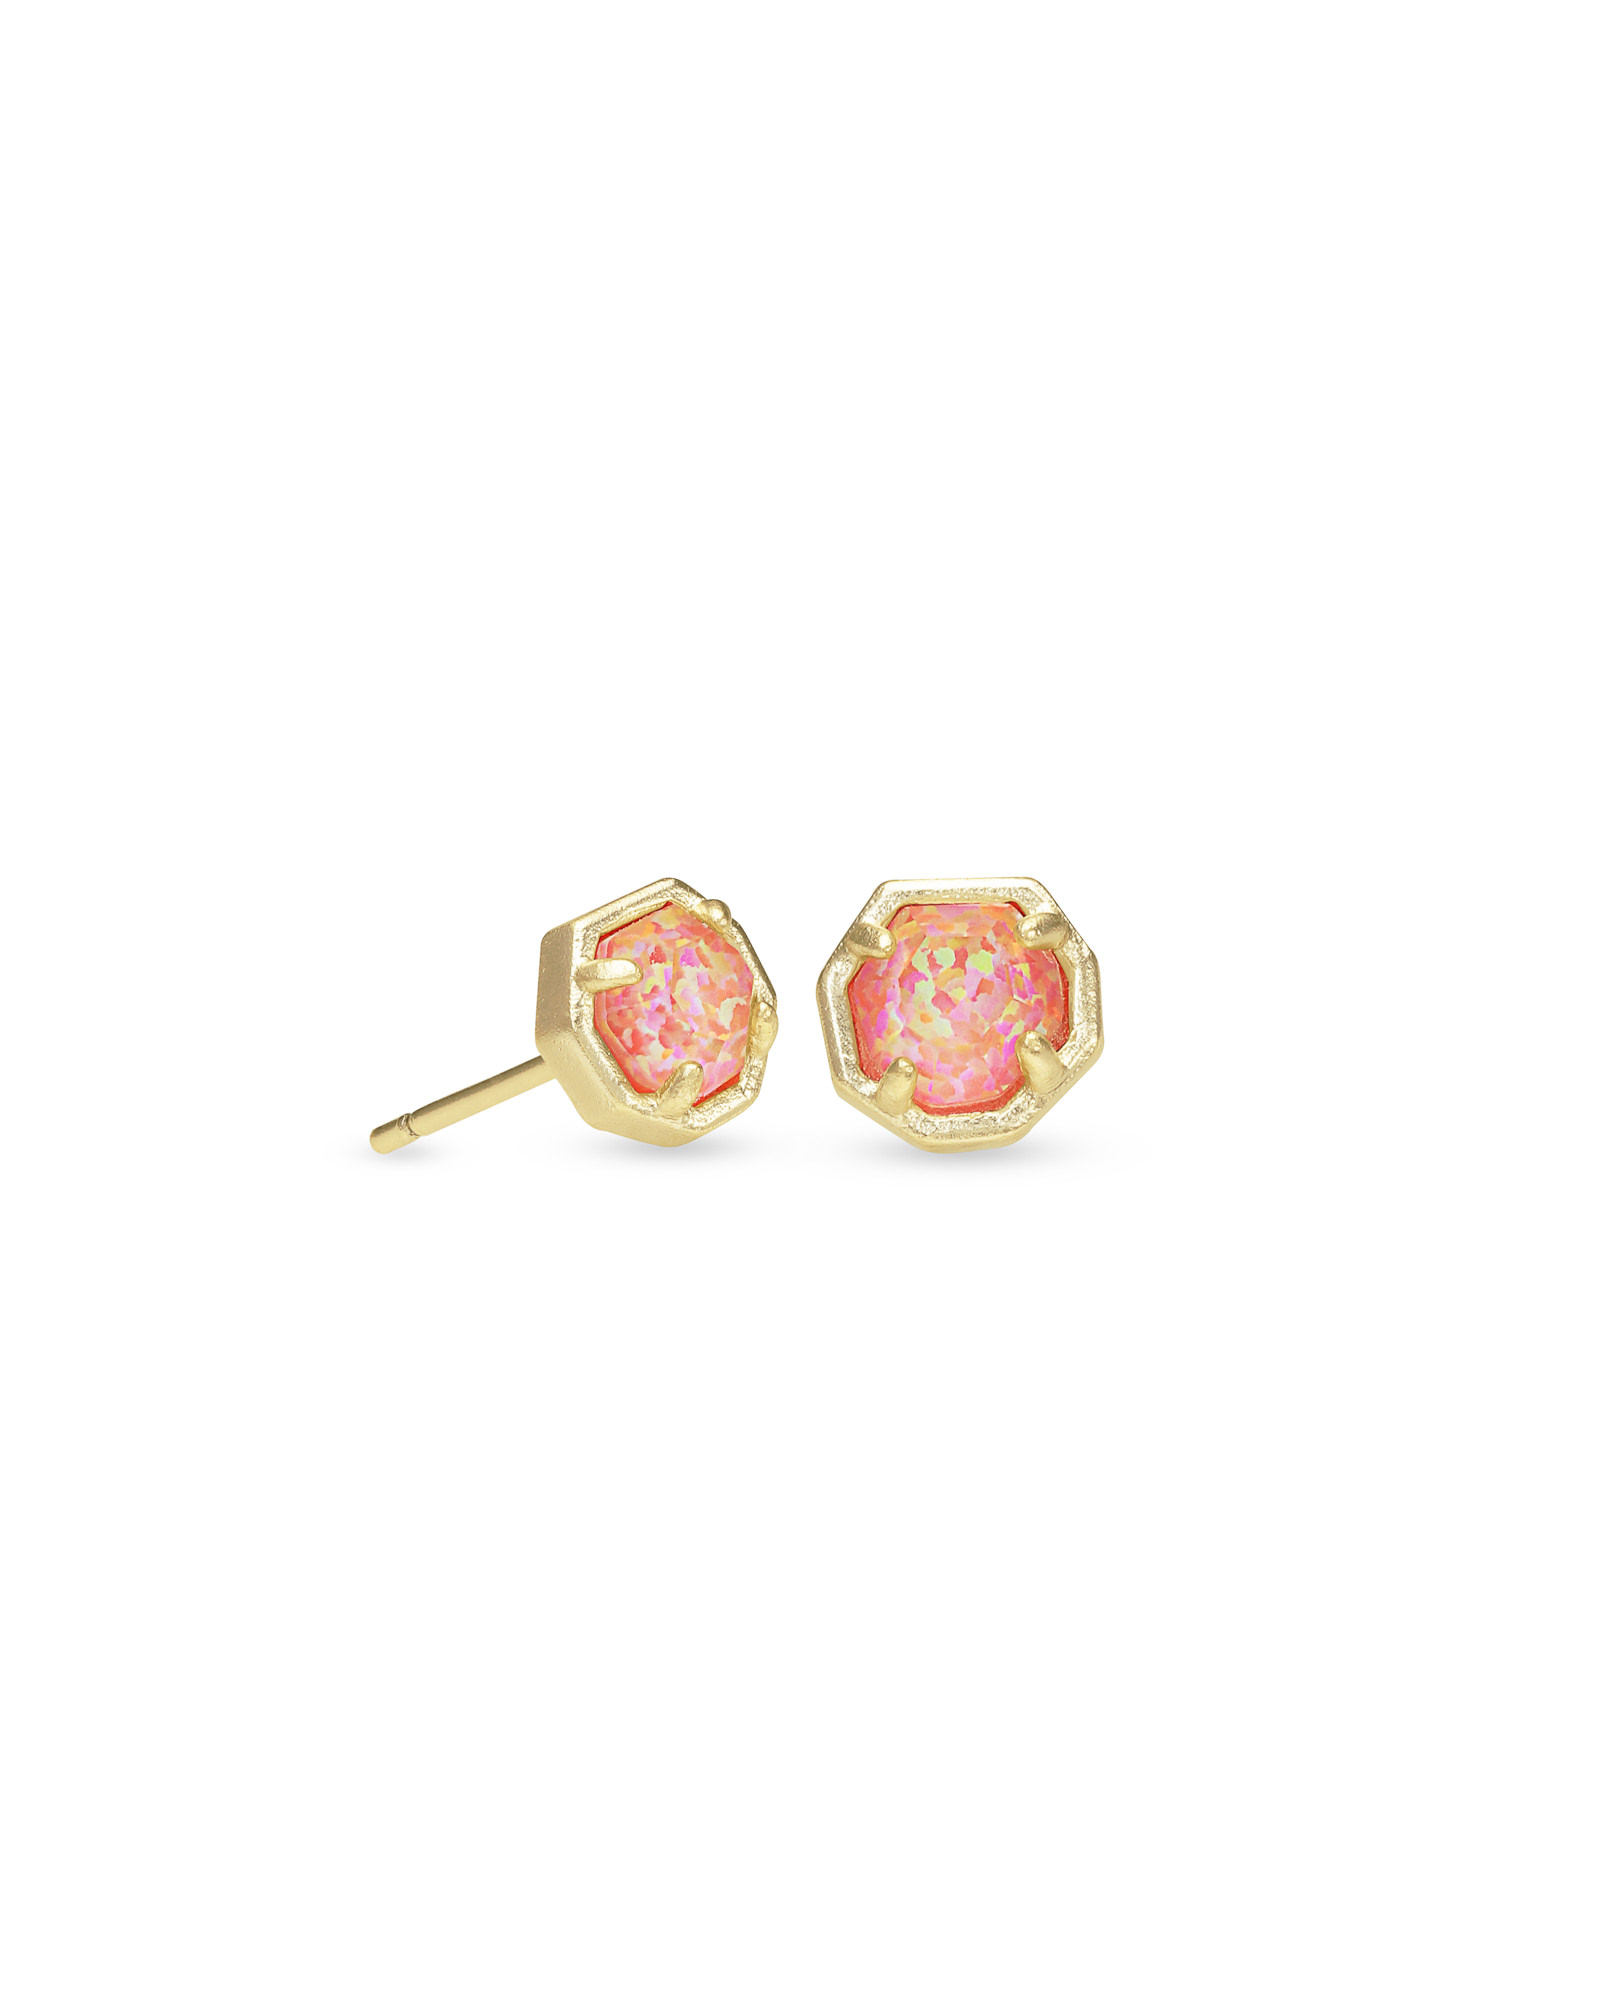 Nola Gold Stud Earrings in Coral Kyocera Opal Illusion